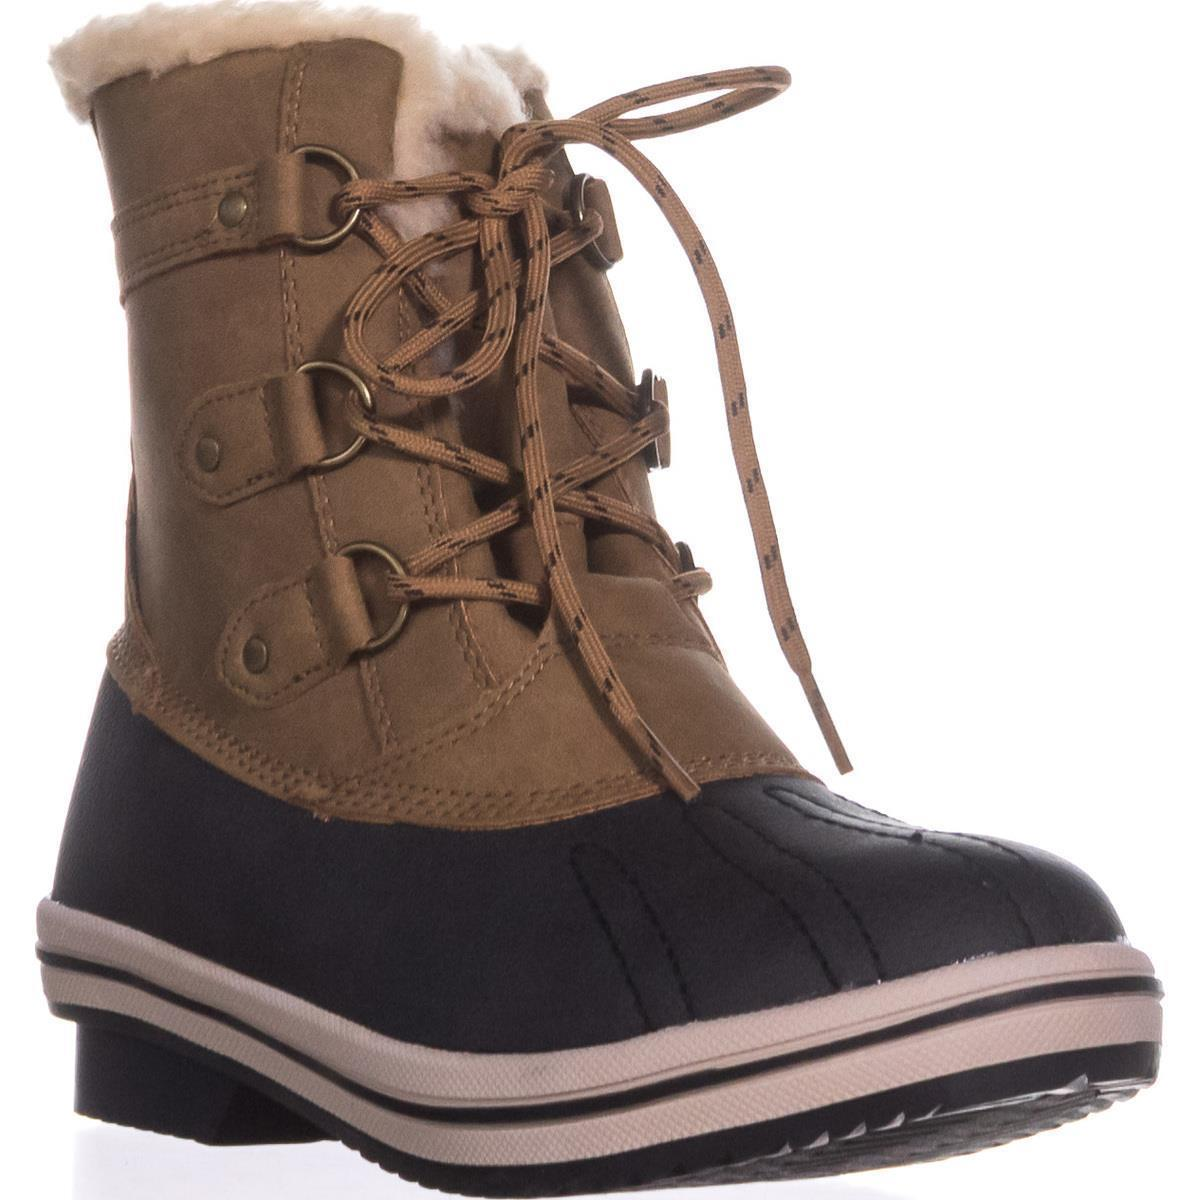 Womens Pawz by Bearpaw Gina Cold-Weather Duck Boots, Hickory by Bearpaw